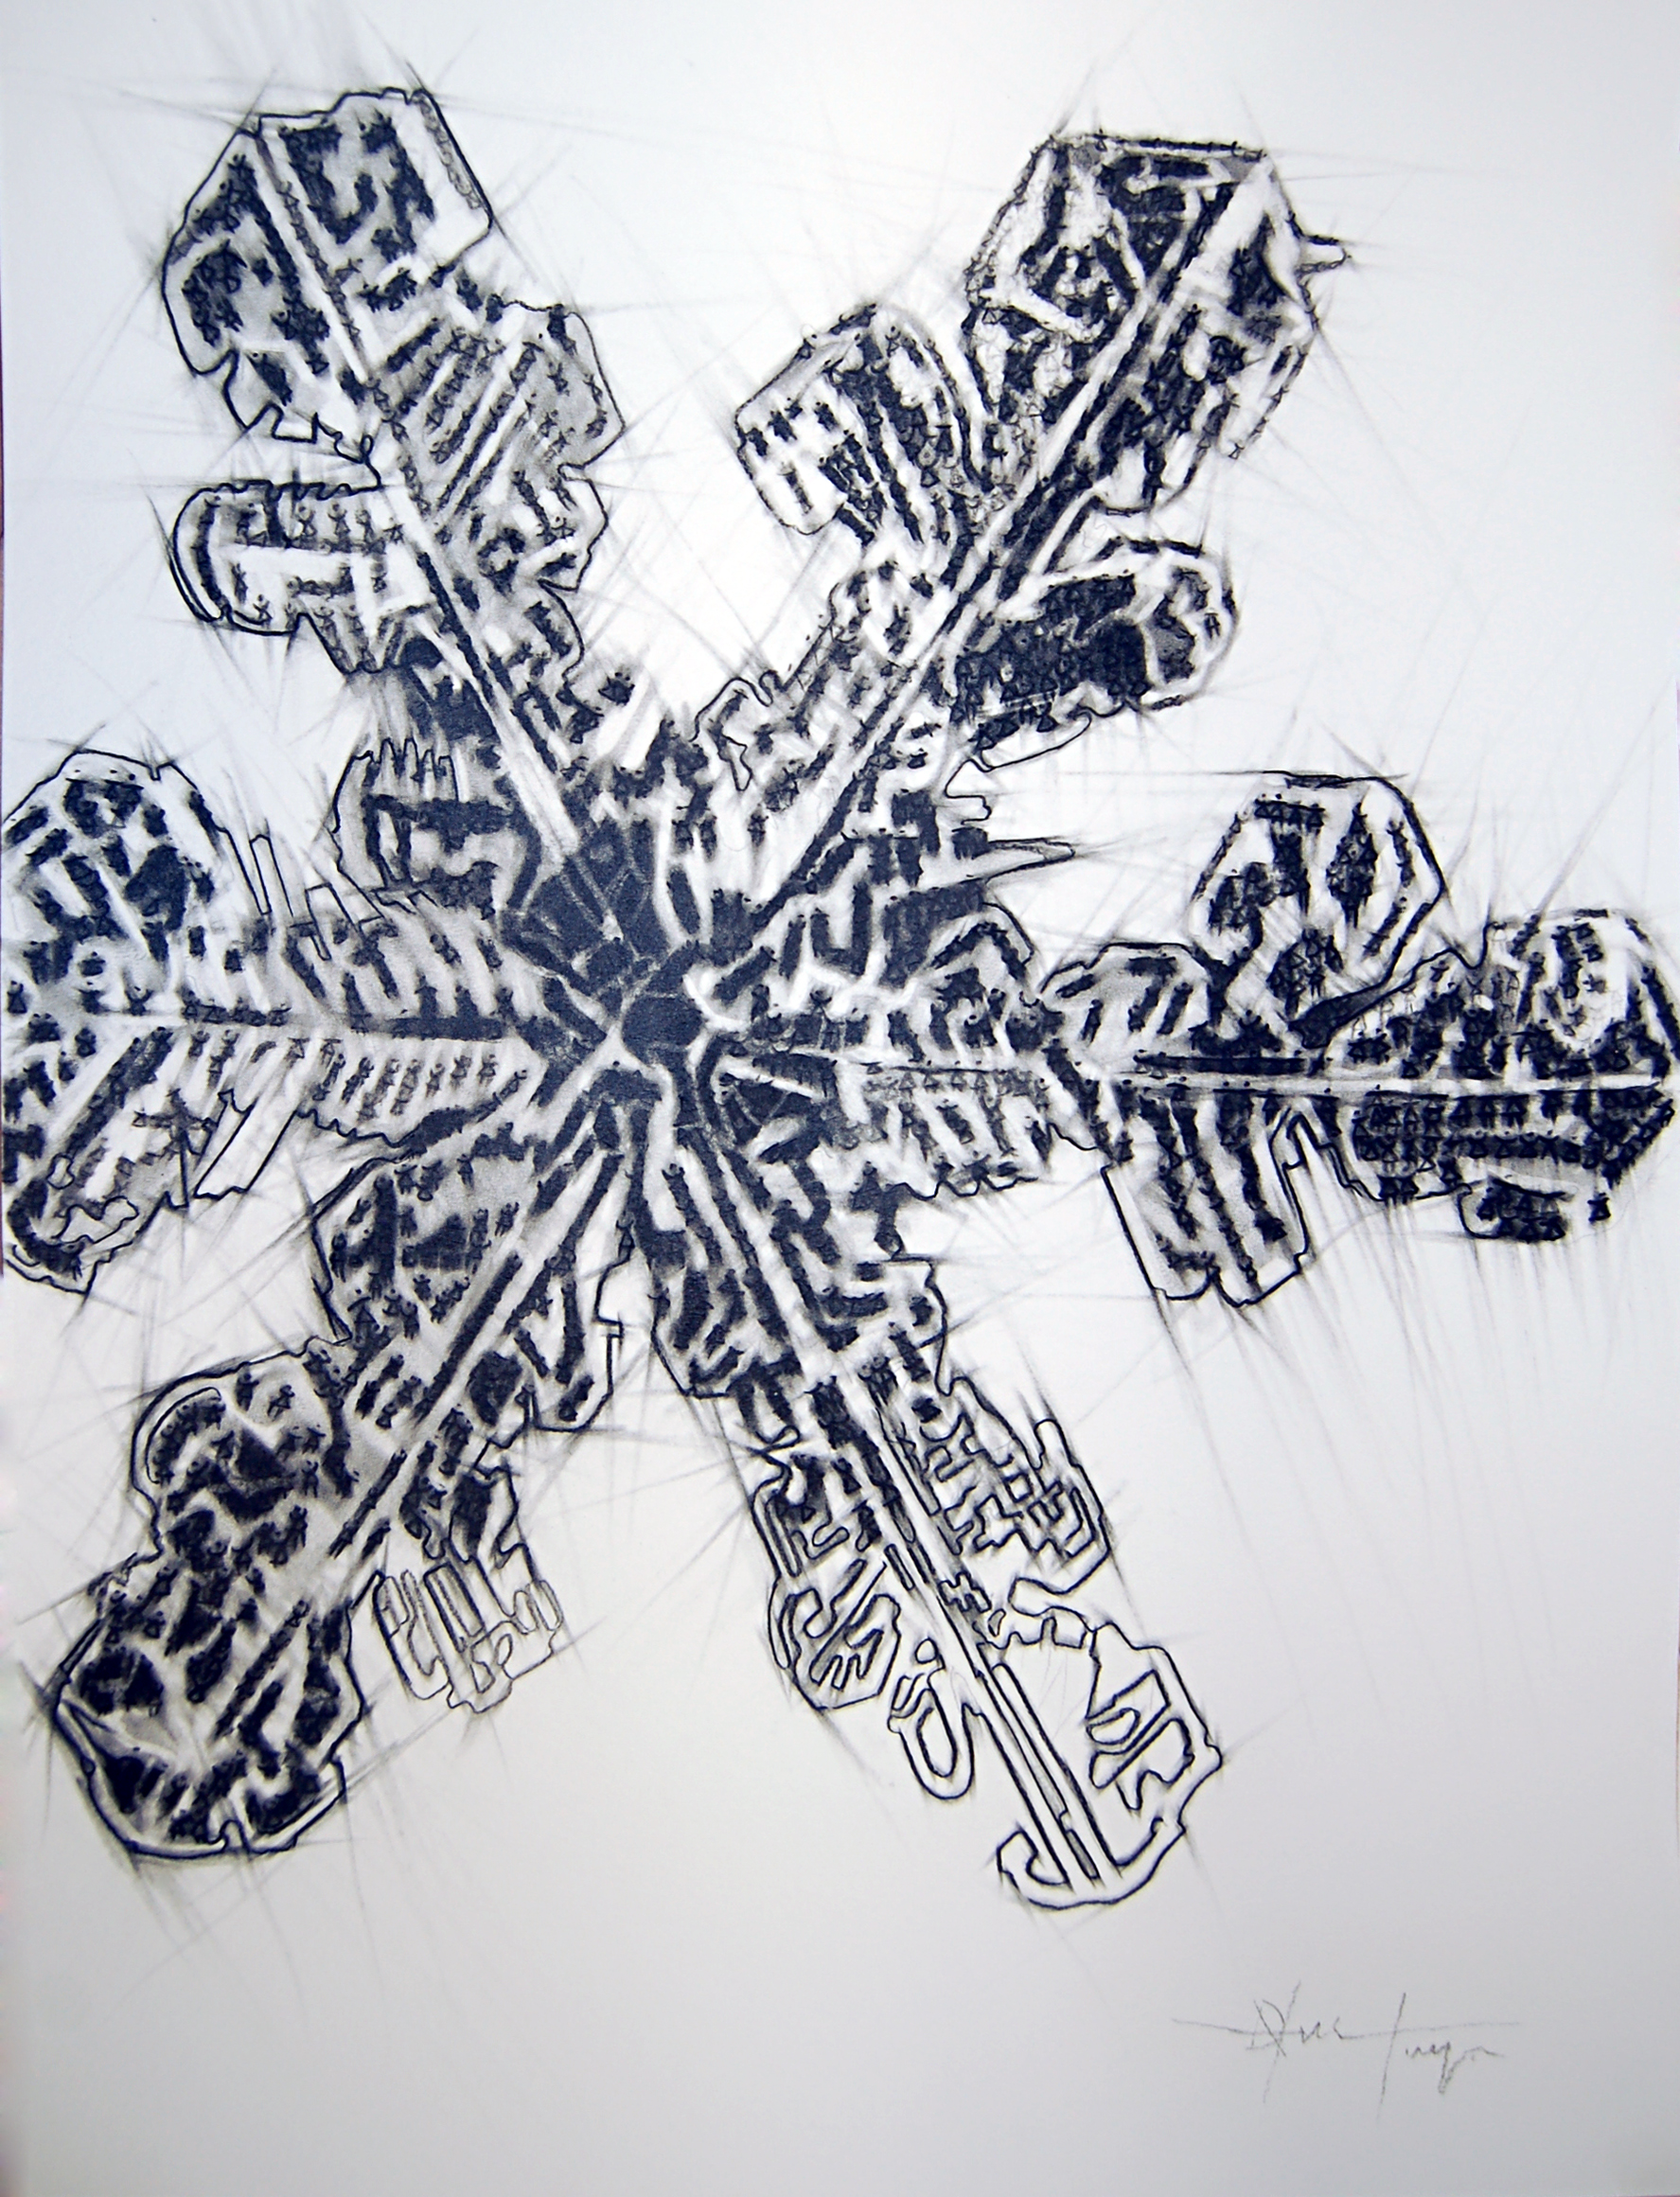 Discovery Series #1 (Snowflake), Charcoal on Paper, 2014, 45.7cm x 61cm